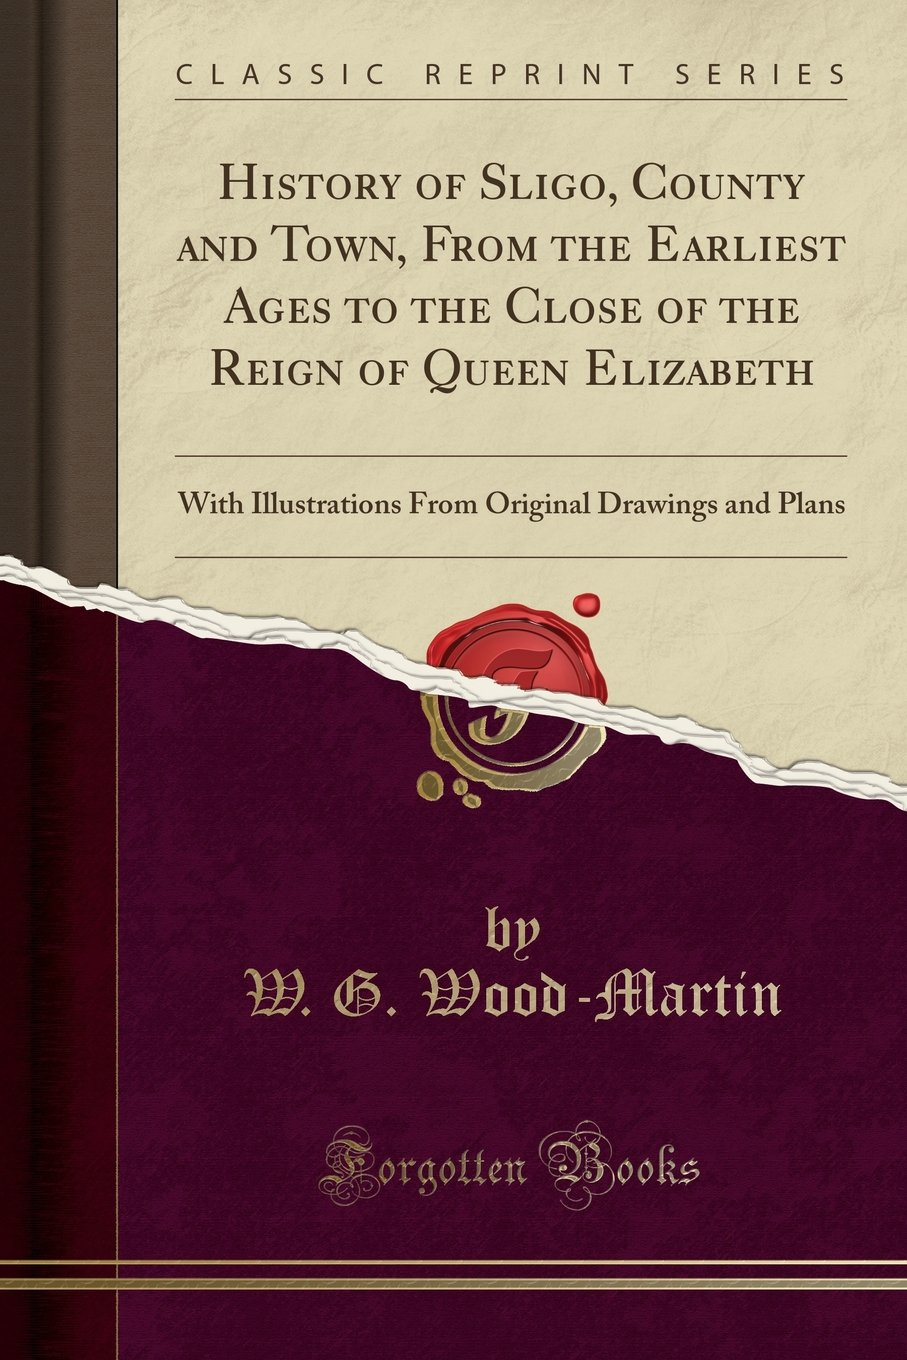 Read Online History of Sligo, County and Town, From the Earliest Ages to the Close of the Reign of Queen Elizabeth: With Illustrations From Original Drawings and Plans (Classic Reprint) PDF ePub book